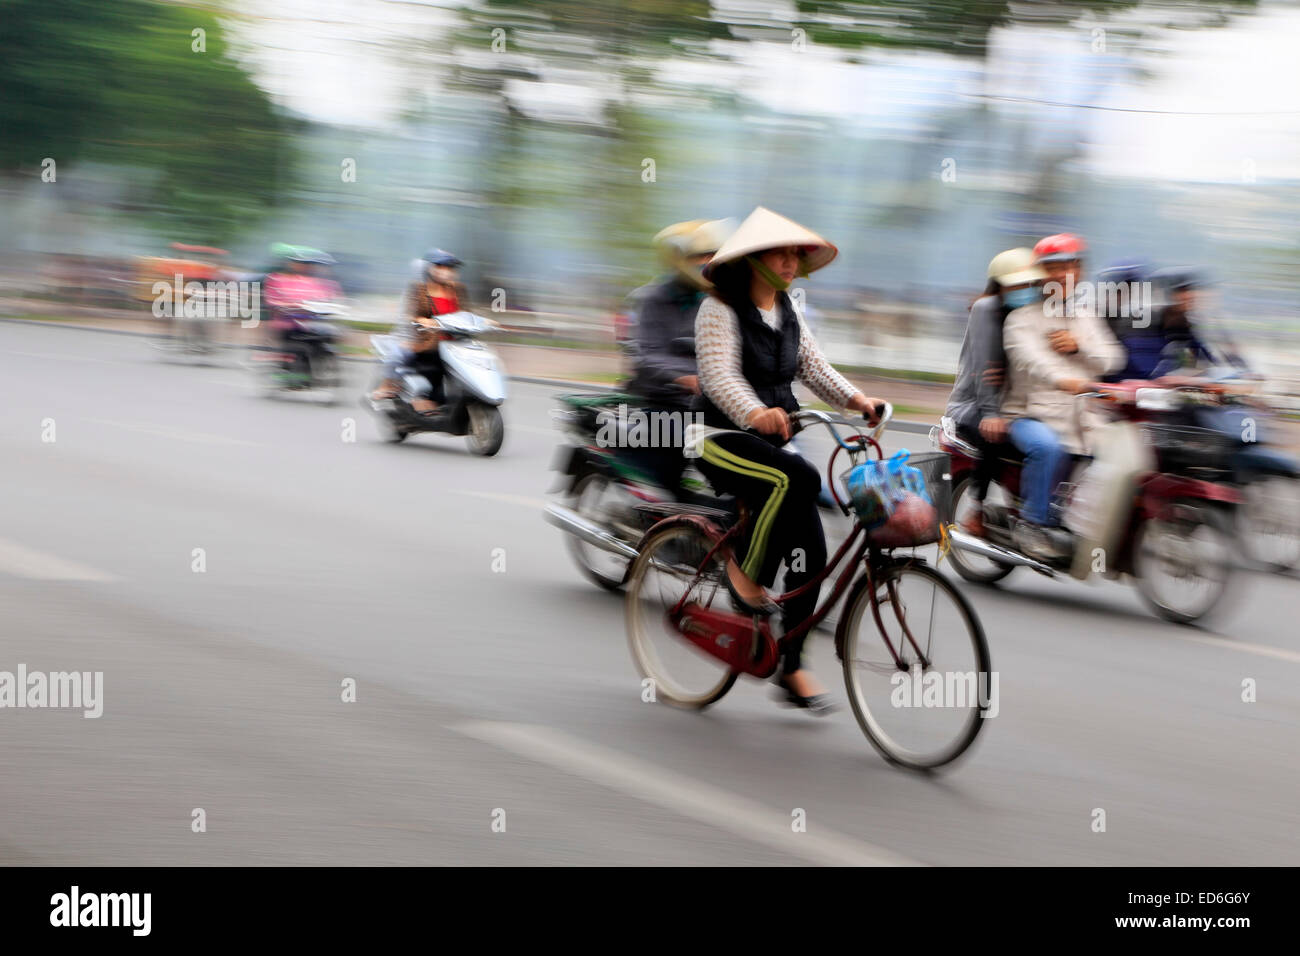 Woman on bike and scooters buzzing by, Hanoi, Vietnam - Stock Image